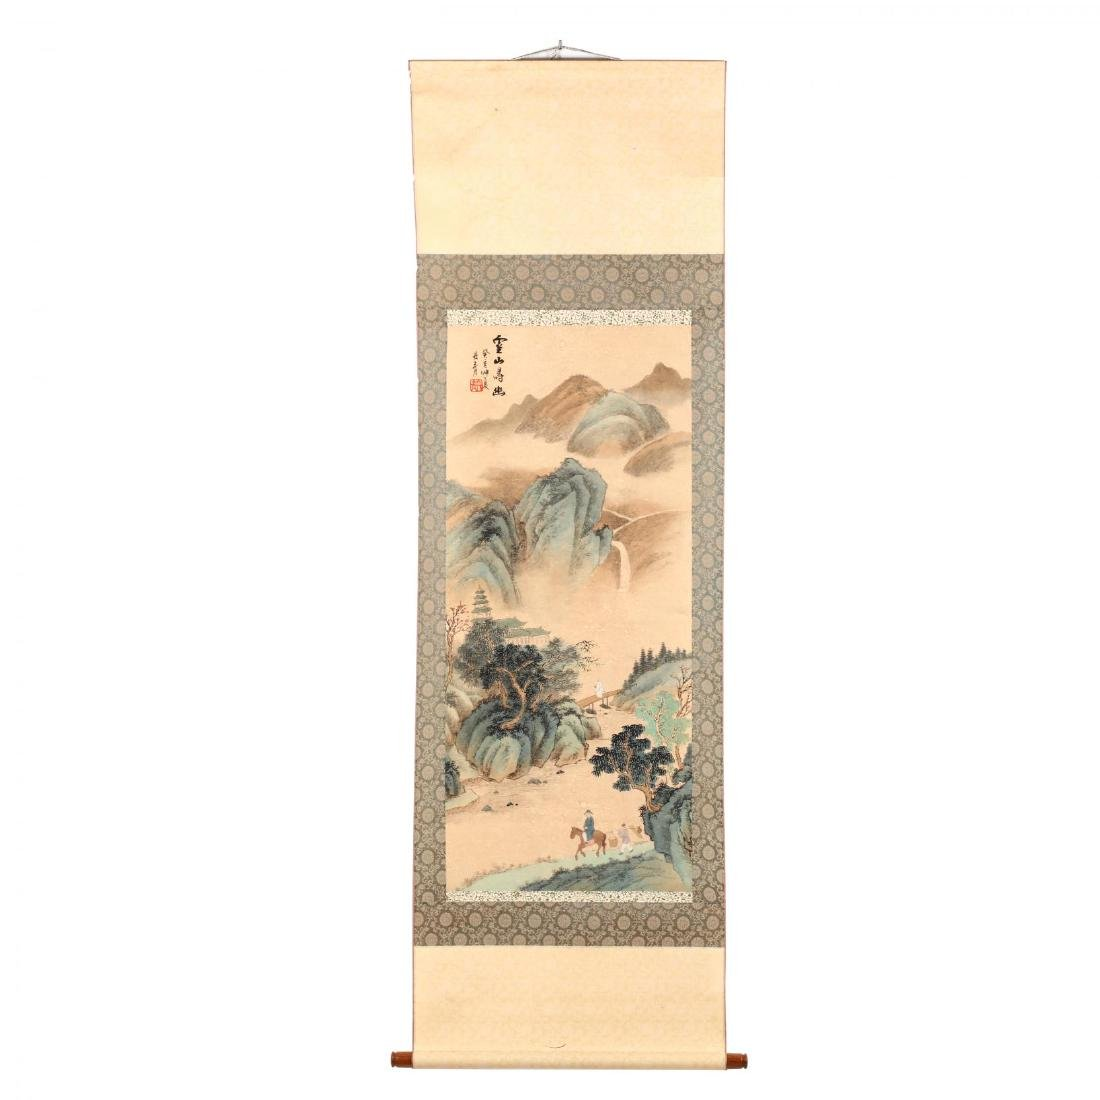 A Hanging Scroll with Landscape